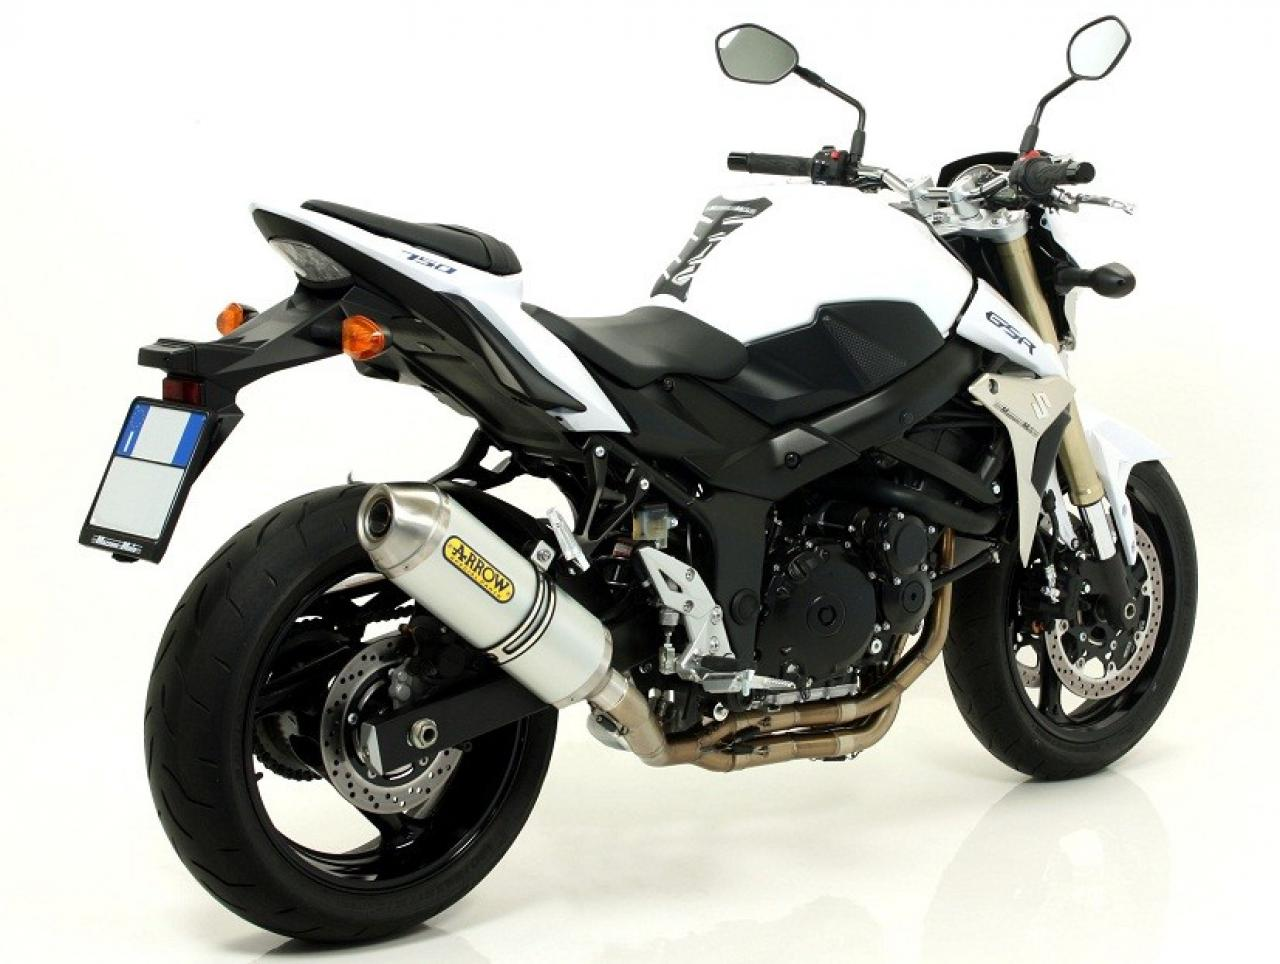 2012 suzuki gsr 750 moto zombdrive com. Black Bedroom Furniture Sets. Home Design Ideas